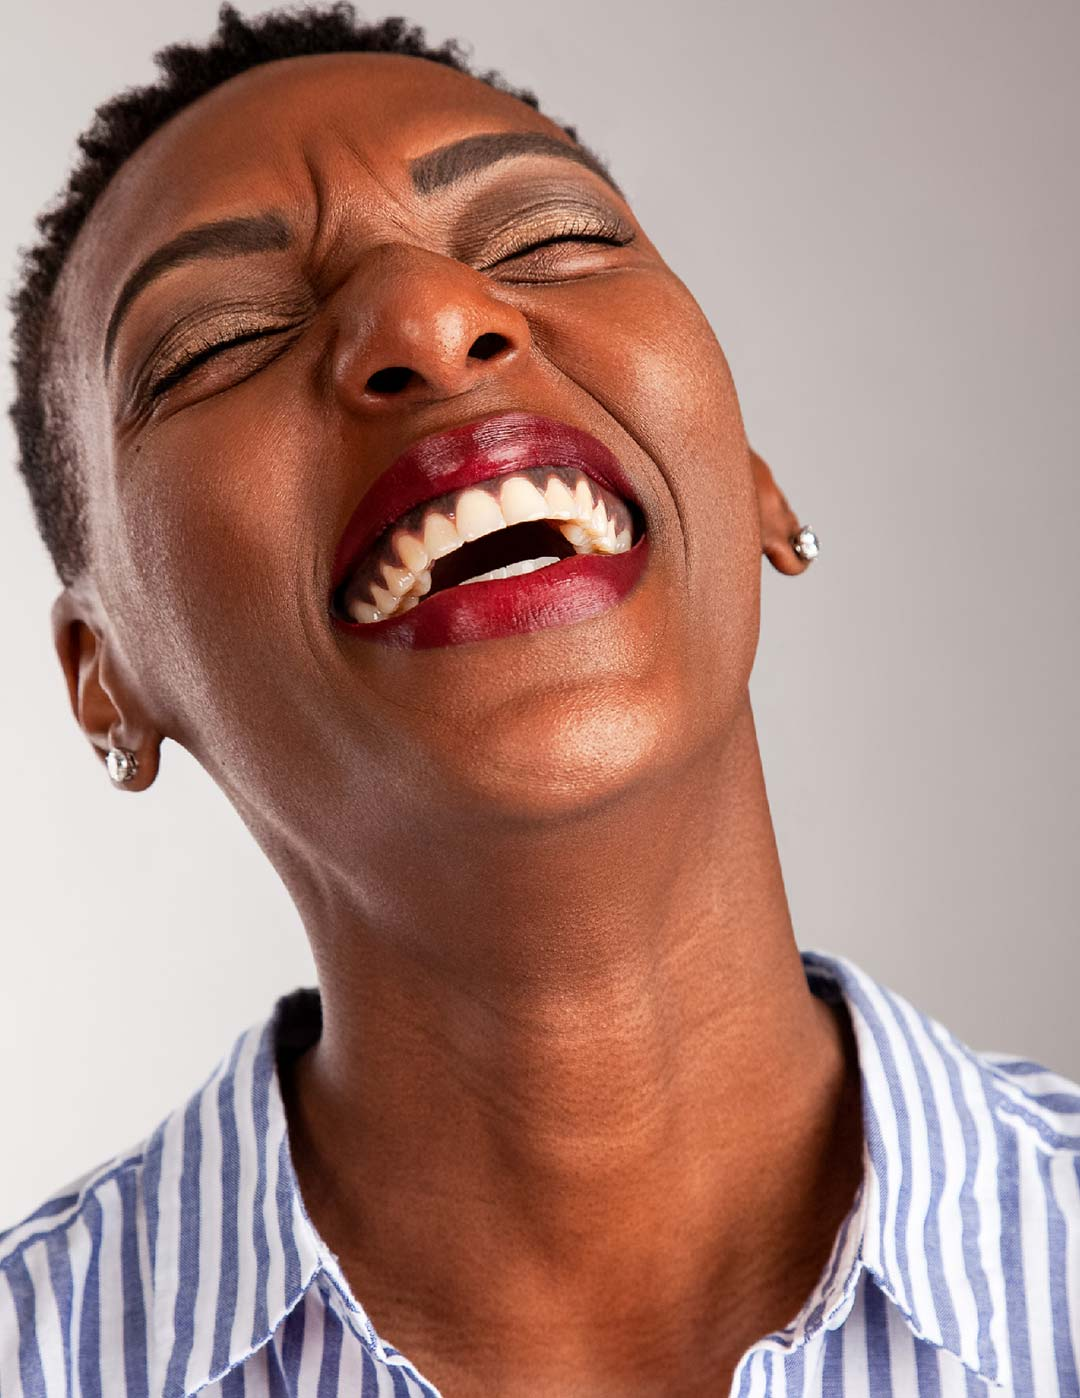 Photograph of Bettye @mybaldisbetter laughing and smiling during test shoot